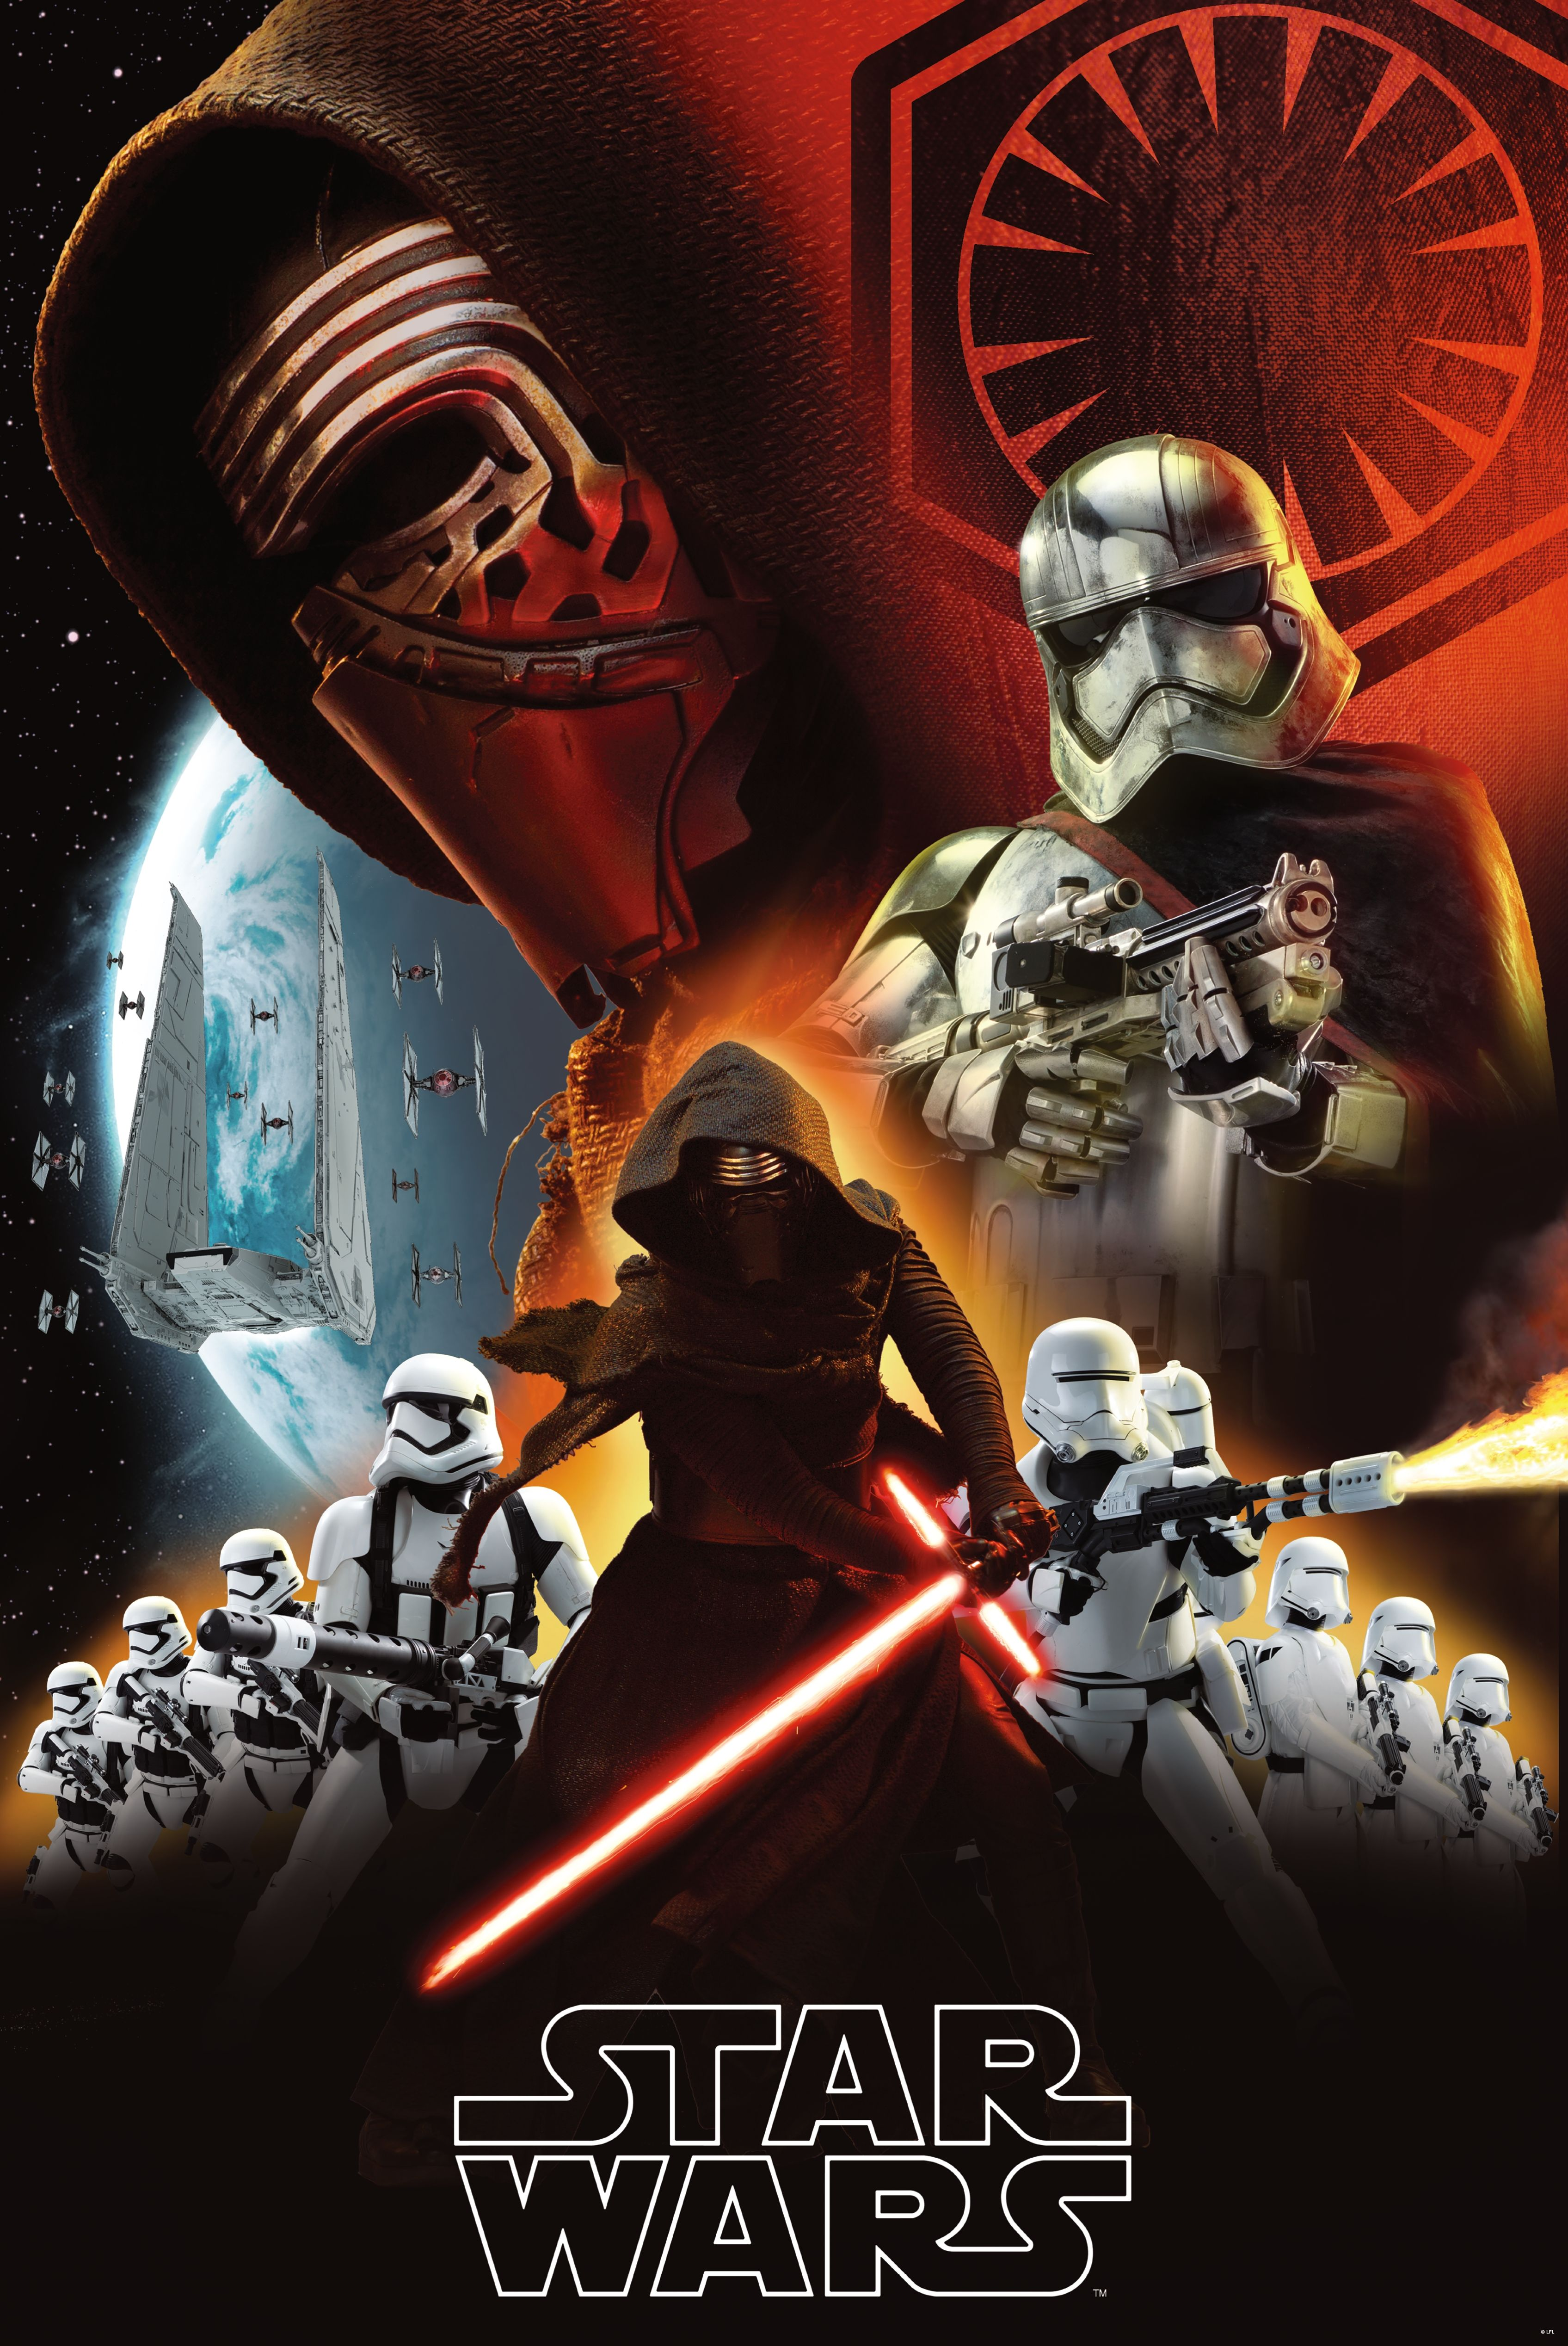 KYLO REN Poster Stormtroopers STAR WARS The Force Awakens Full Size Print